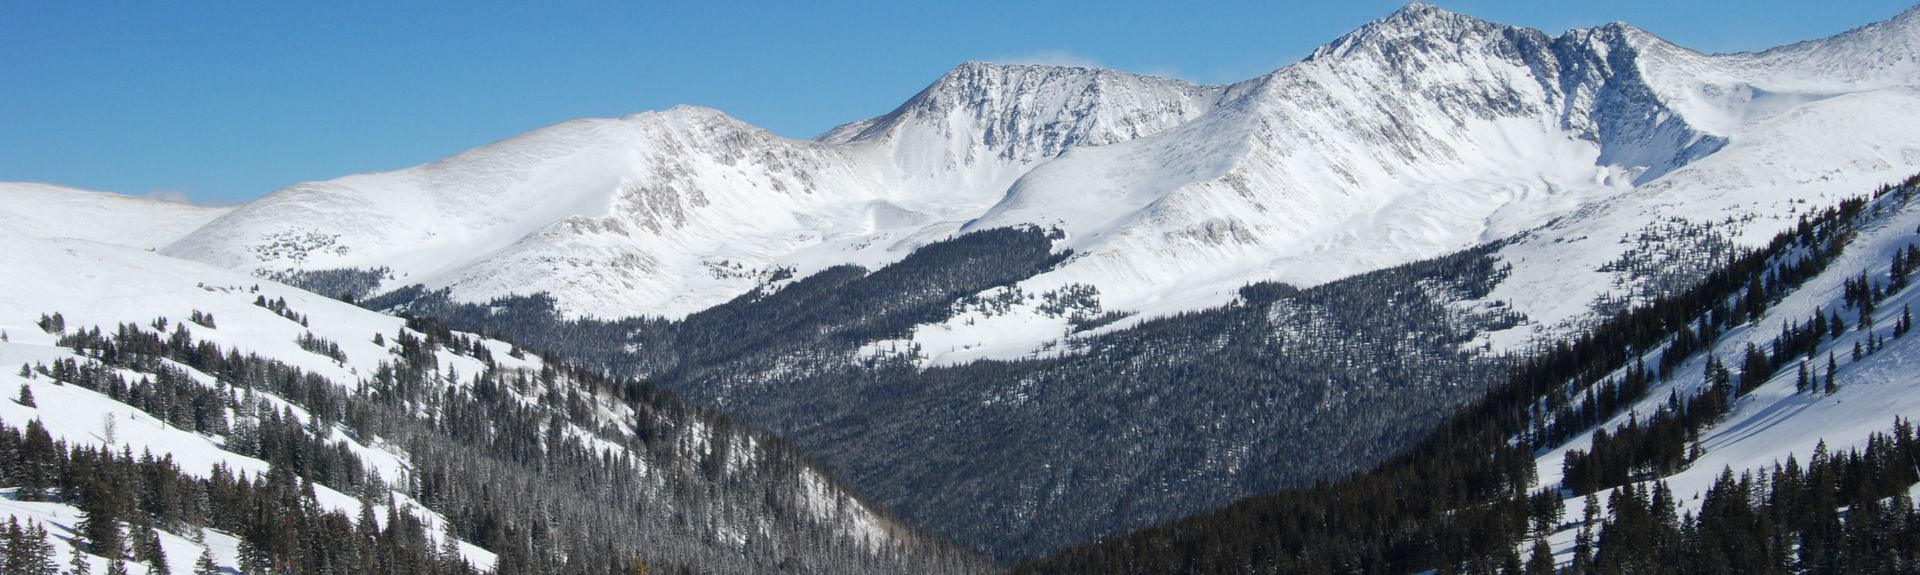 Frisco, Colorado, Estados Unidos